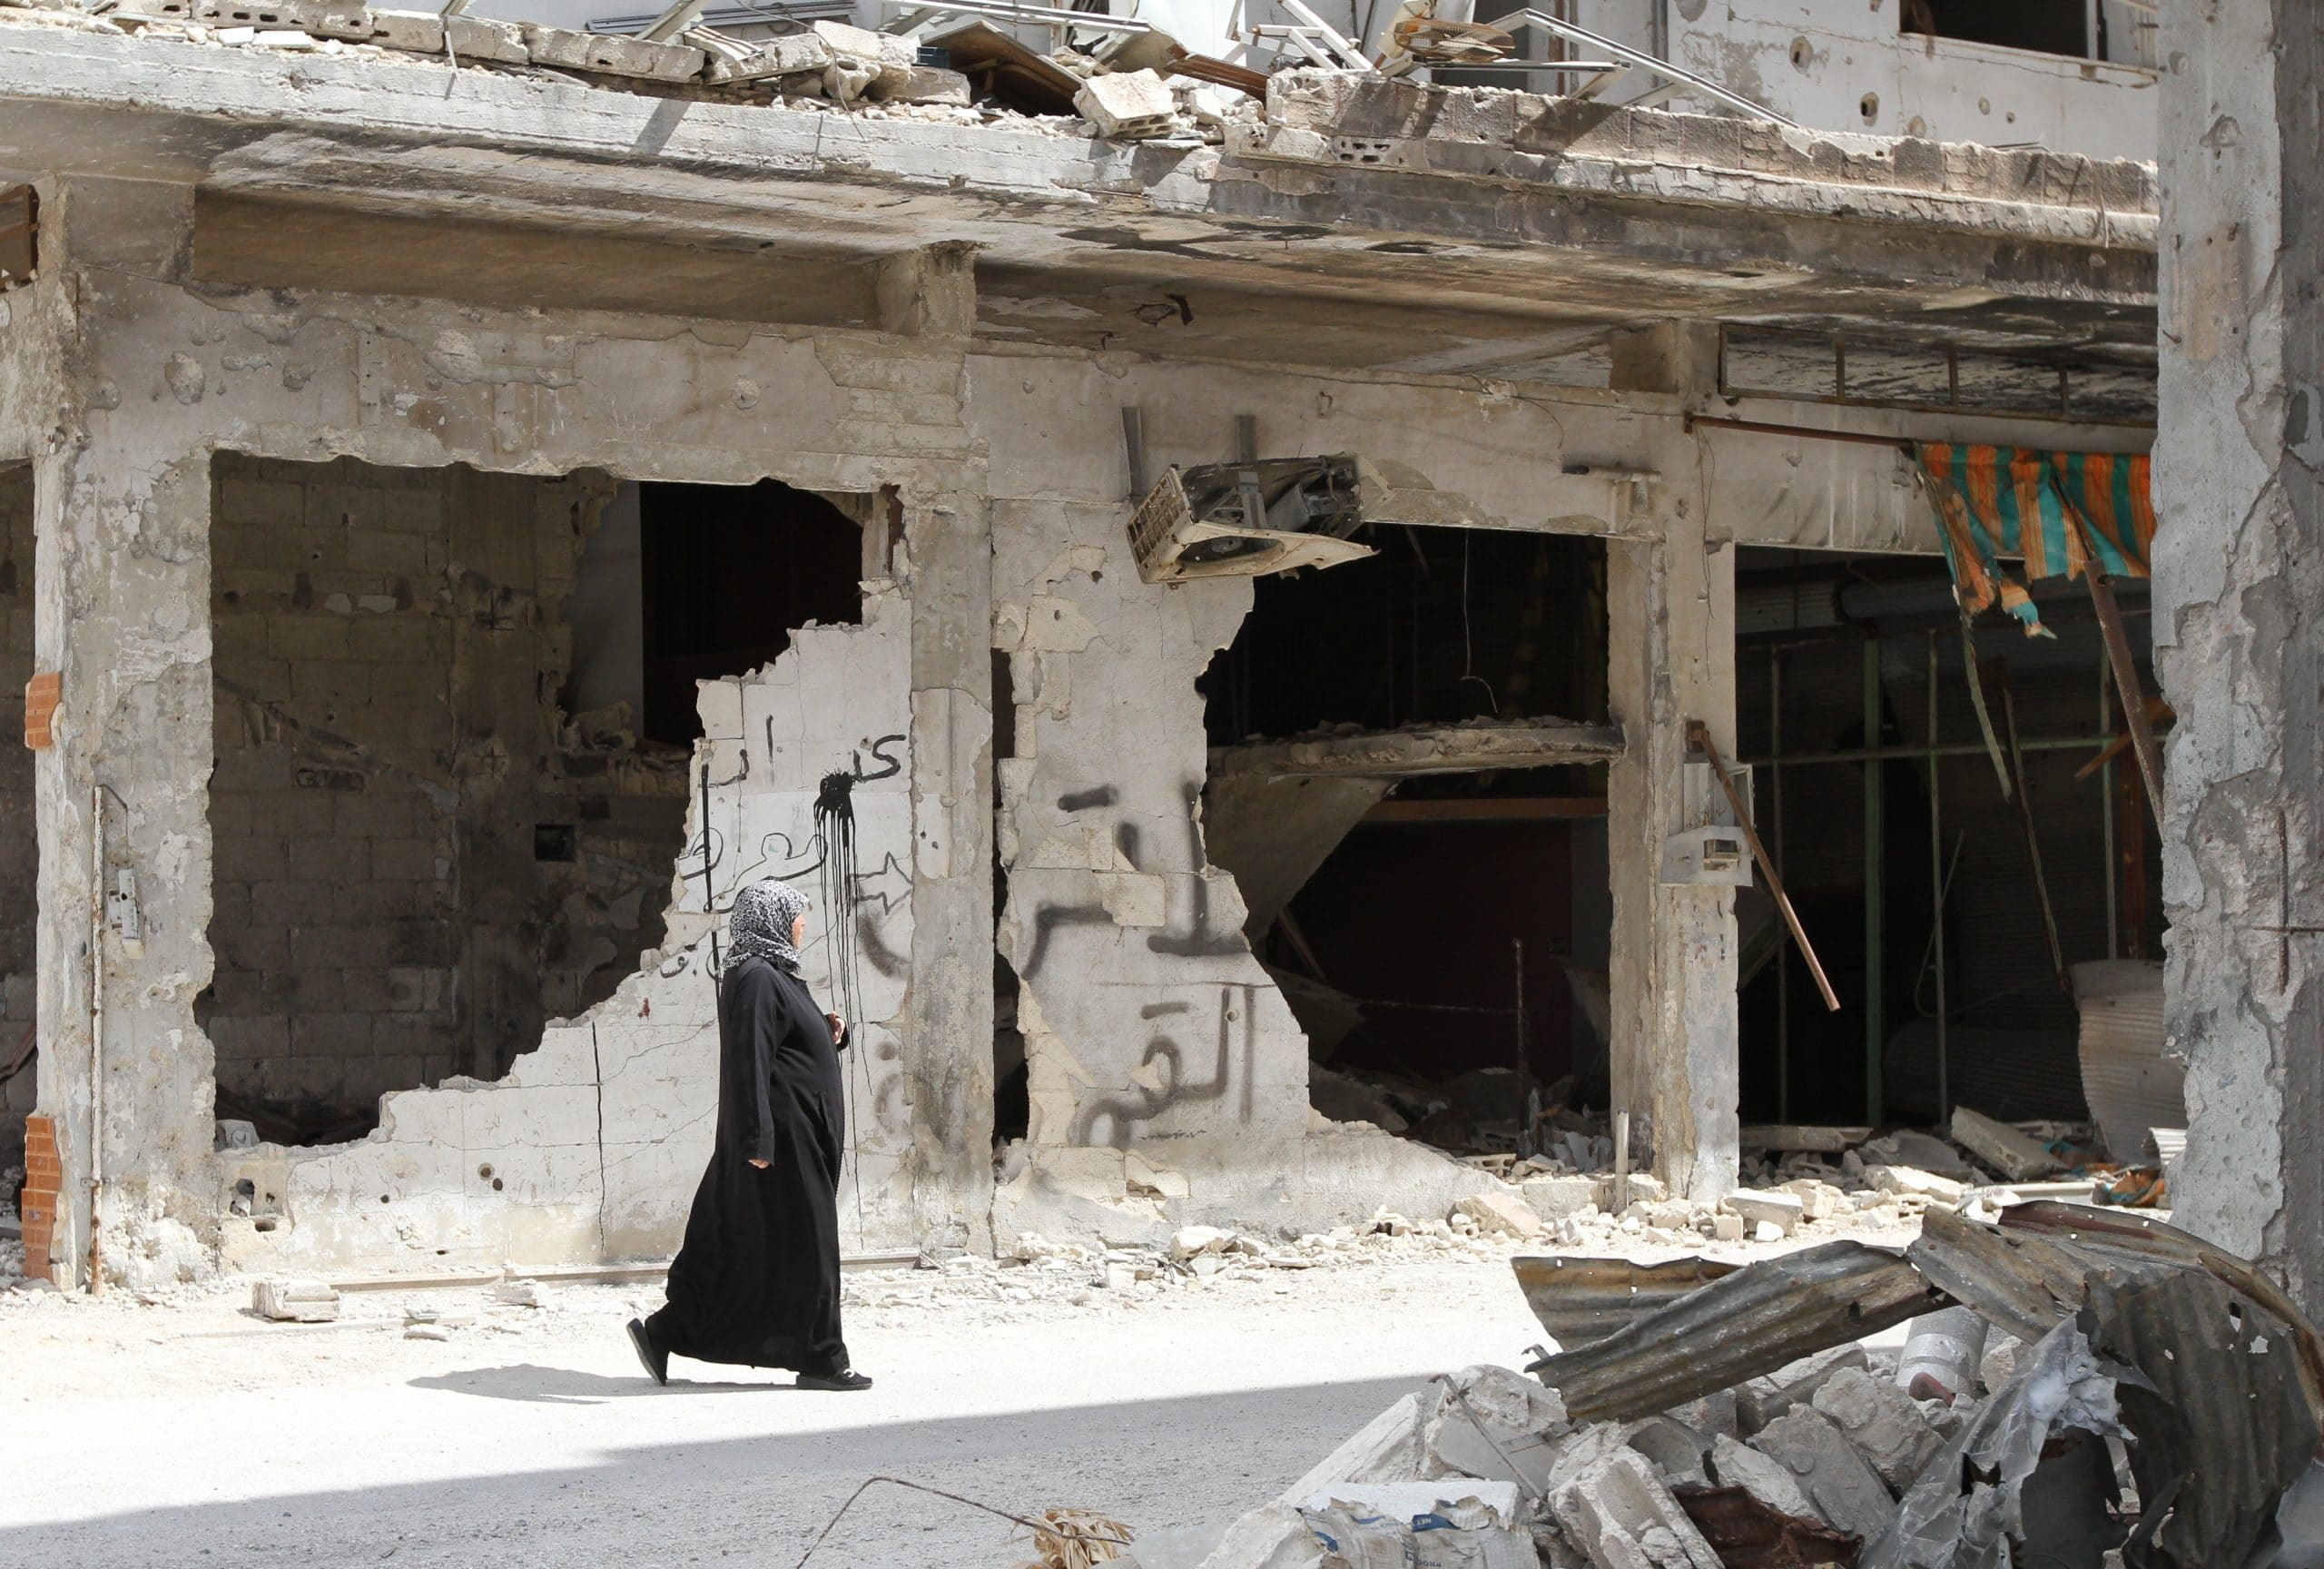 A woman walks near a house in the city of Homs destroyed in the fighting between the rebels of the Syrian National Army  A